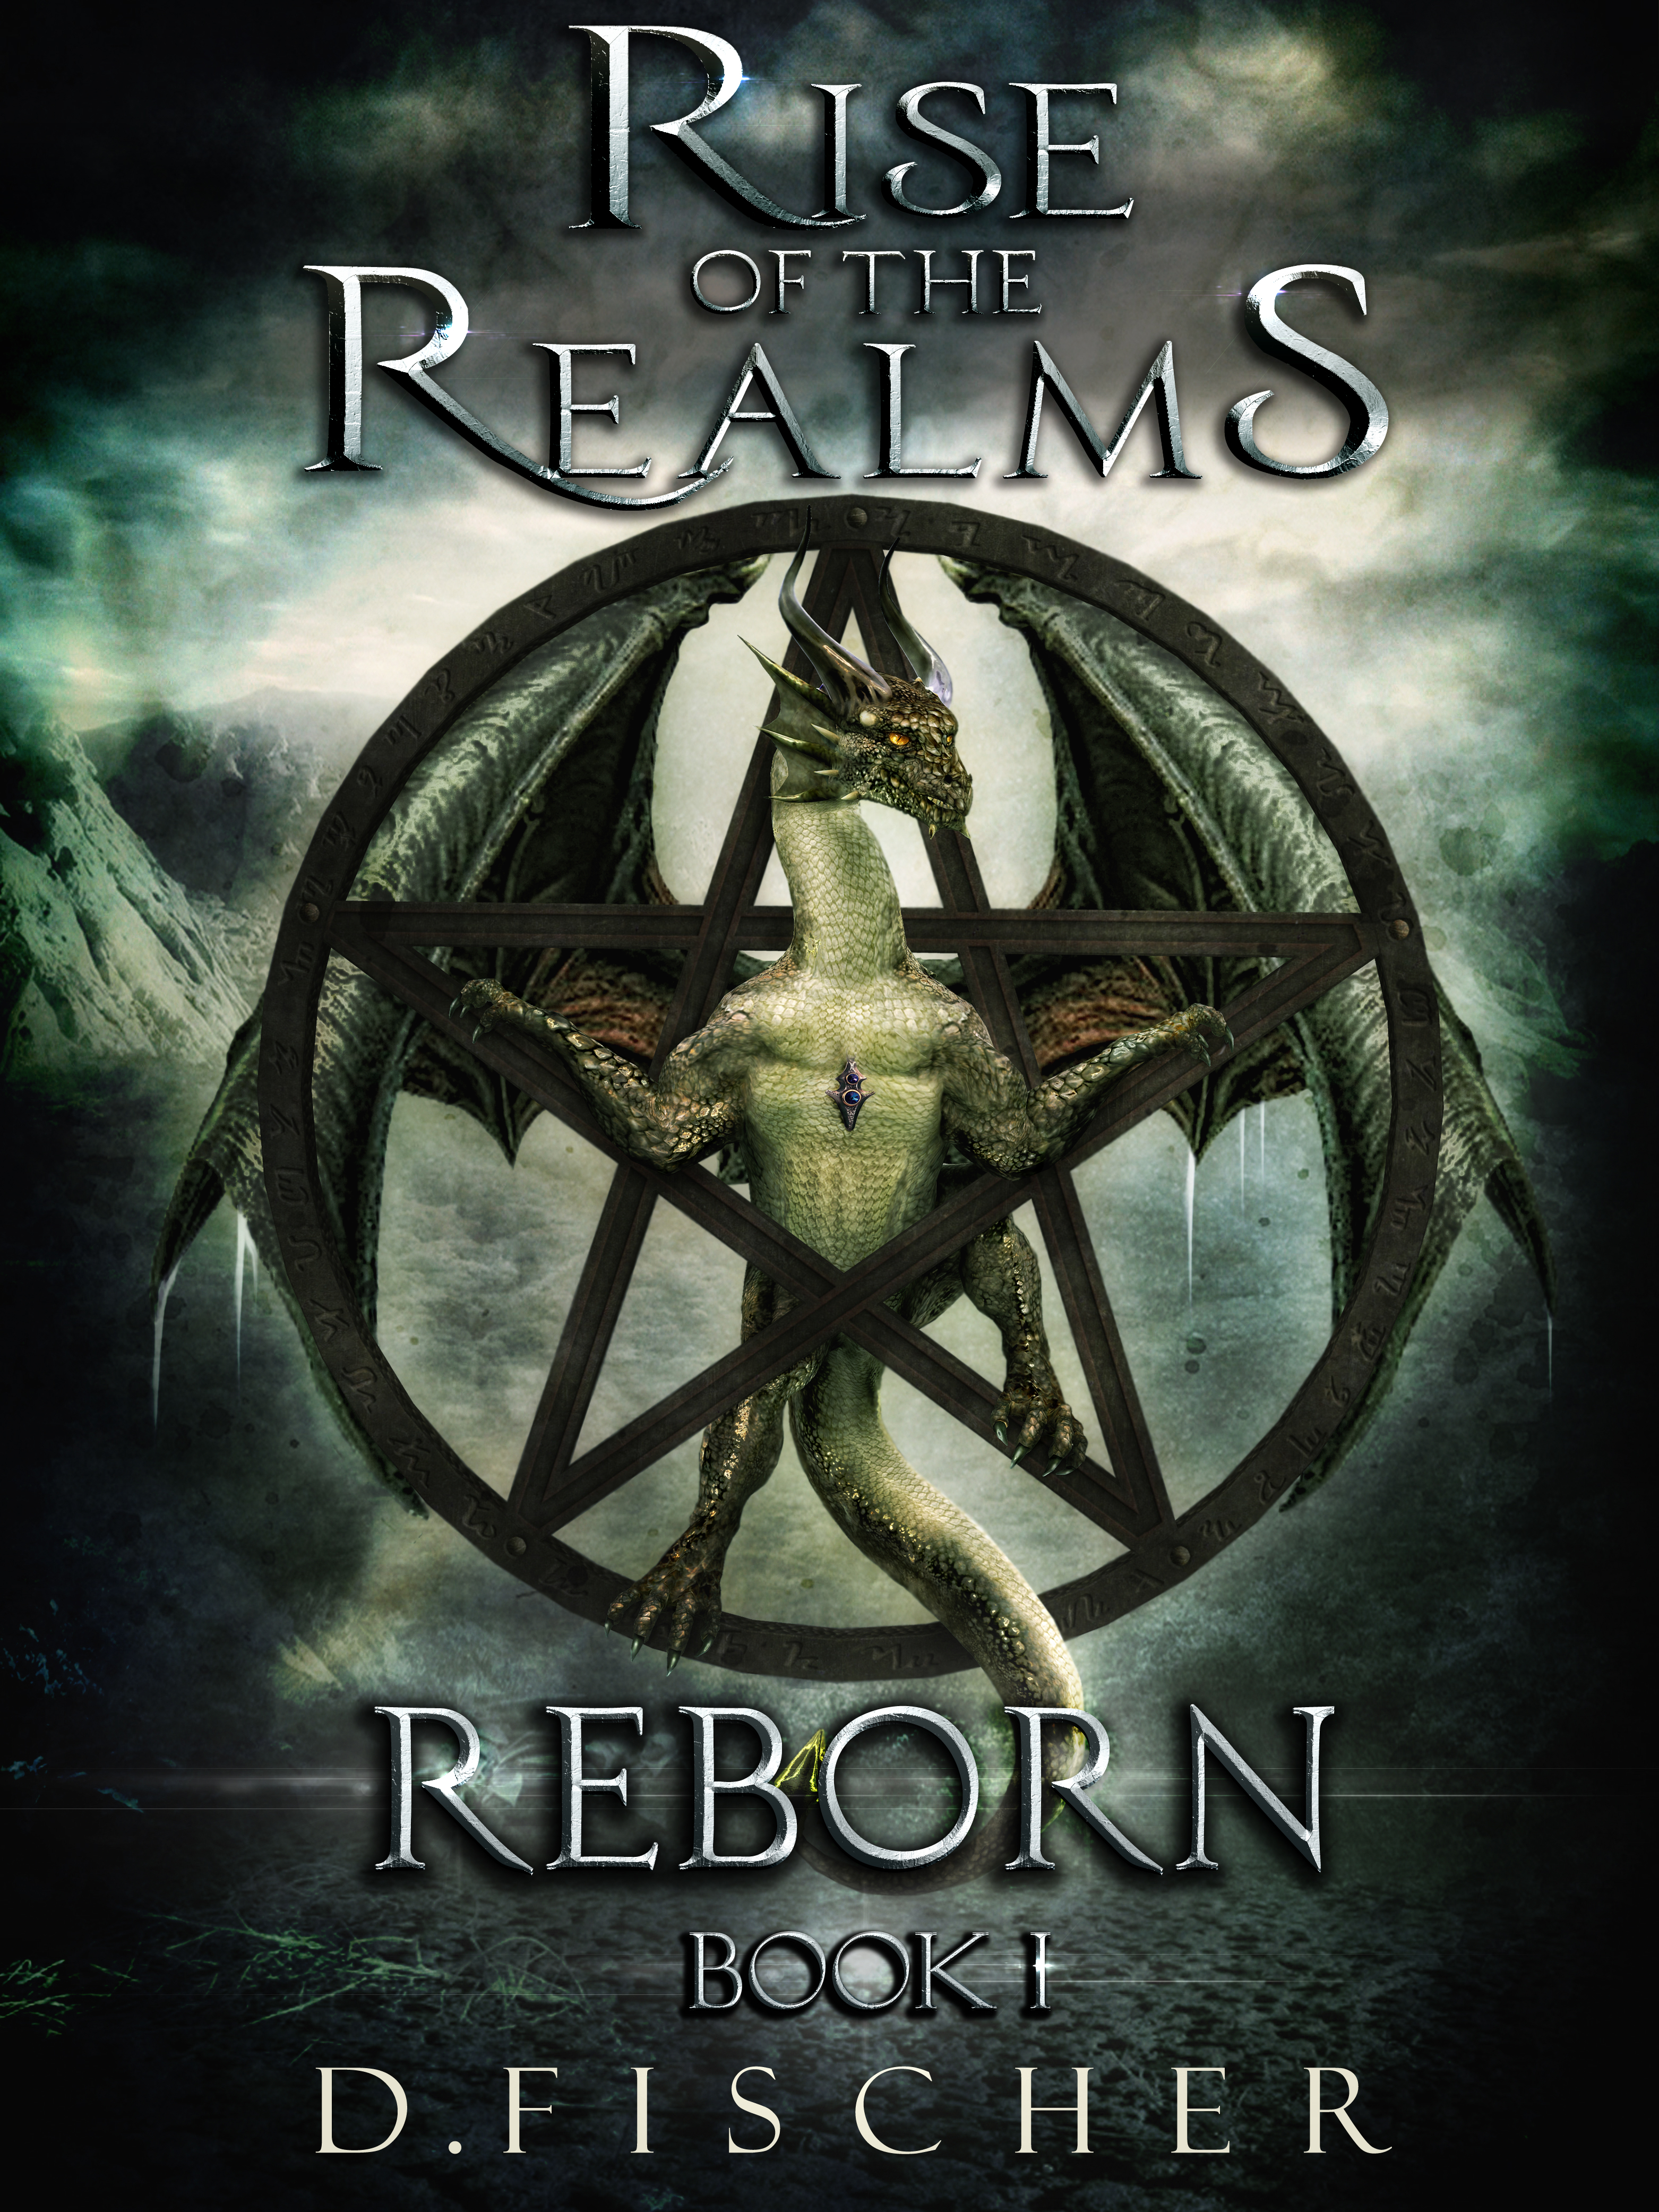 Rise of the Realms, a Dark Fantasy, Epic Fantasy, and Dark Fantasy Horror Series by D. Fischer